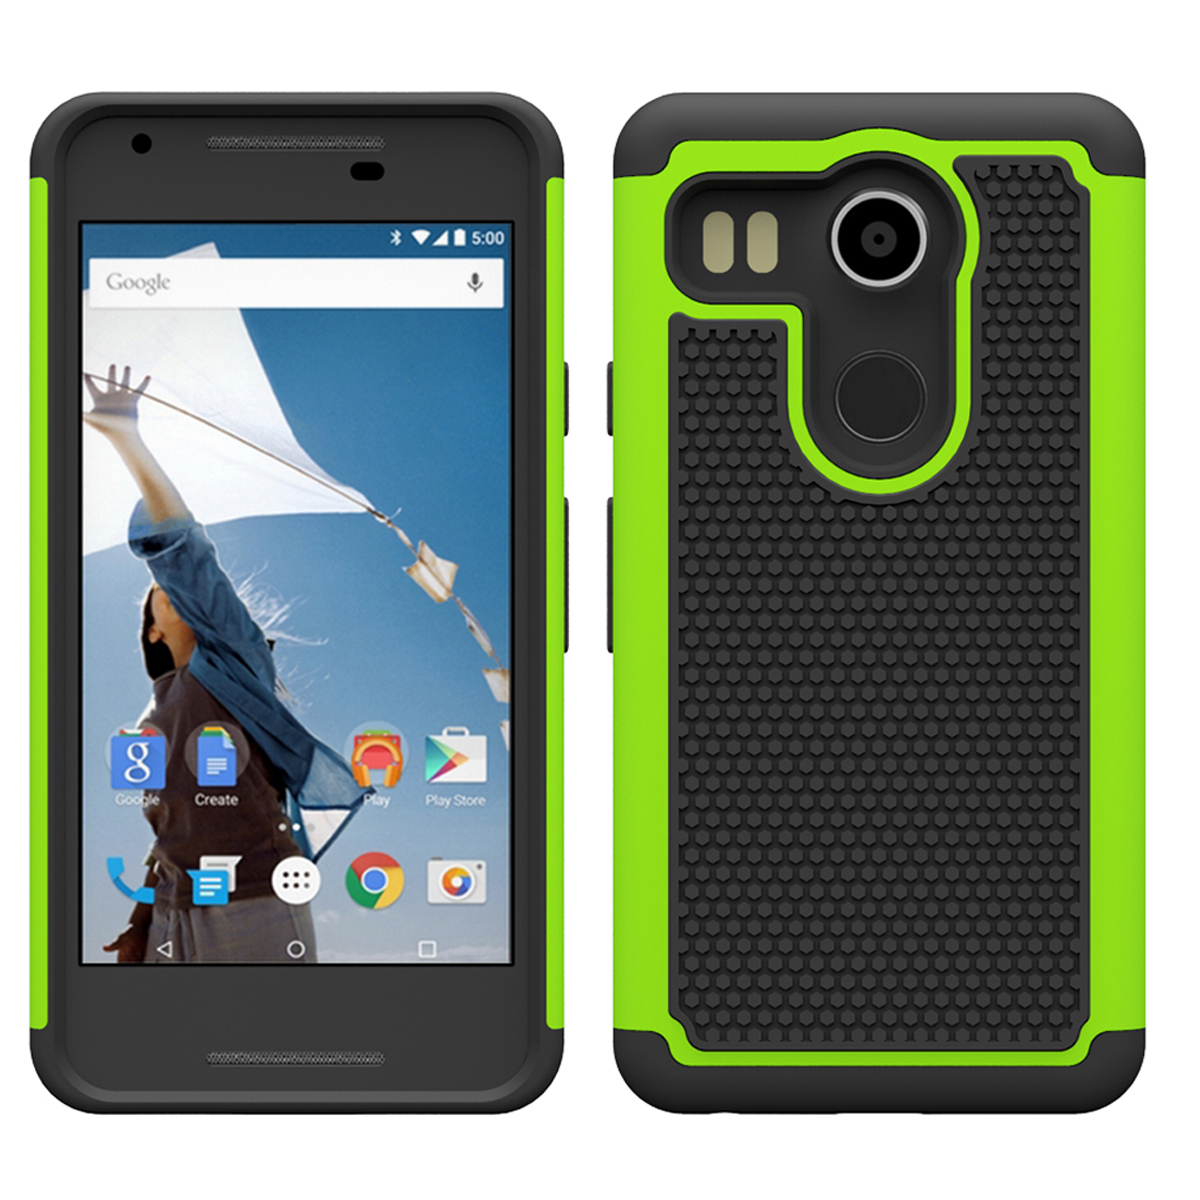 Shock absorbing dual layer hybrid protective armor case for lg nexus 5x green p20151116155951419